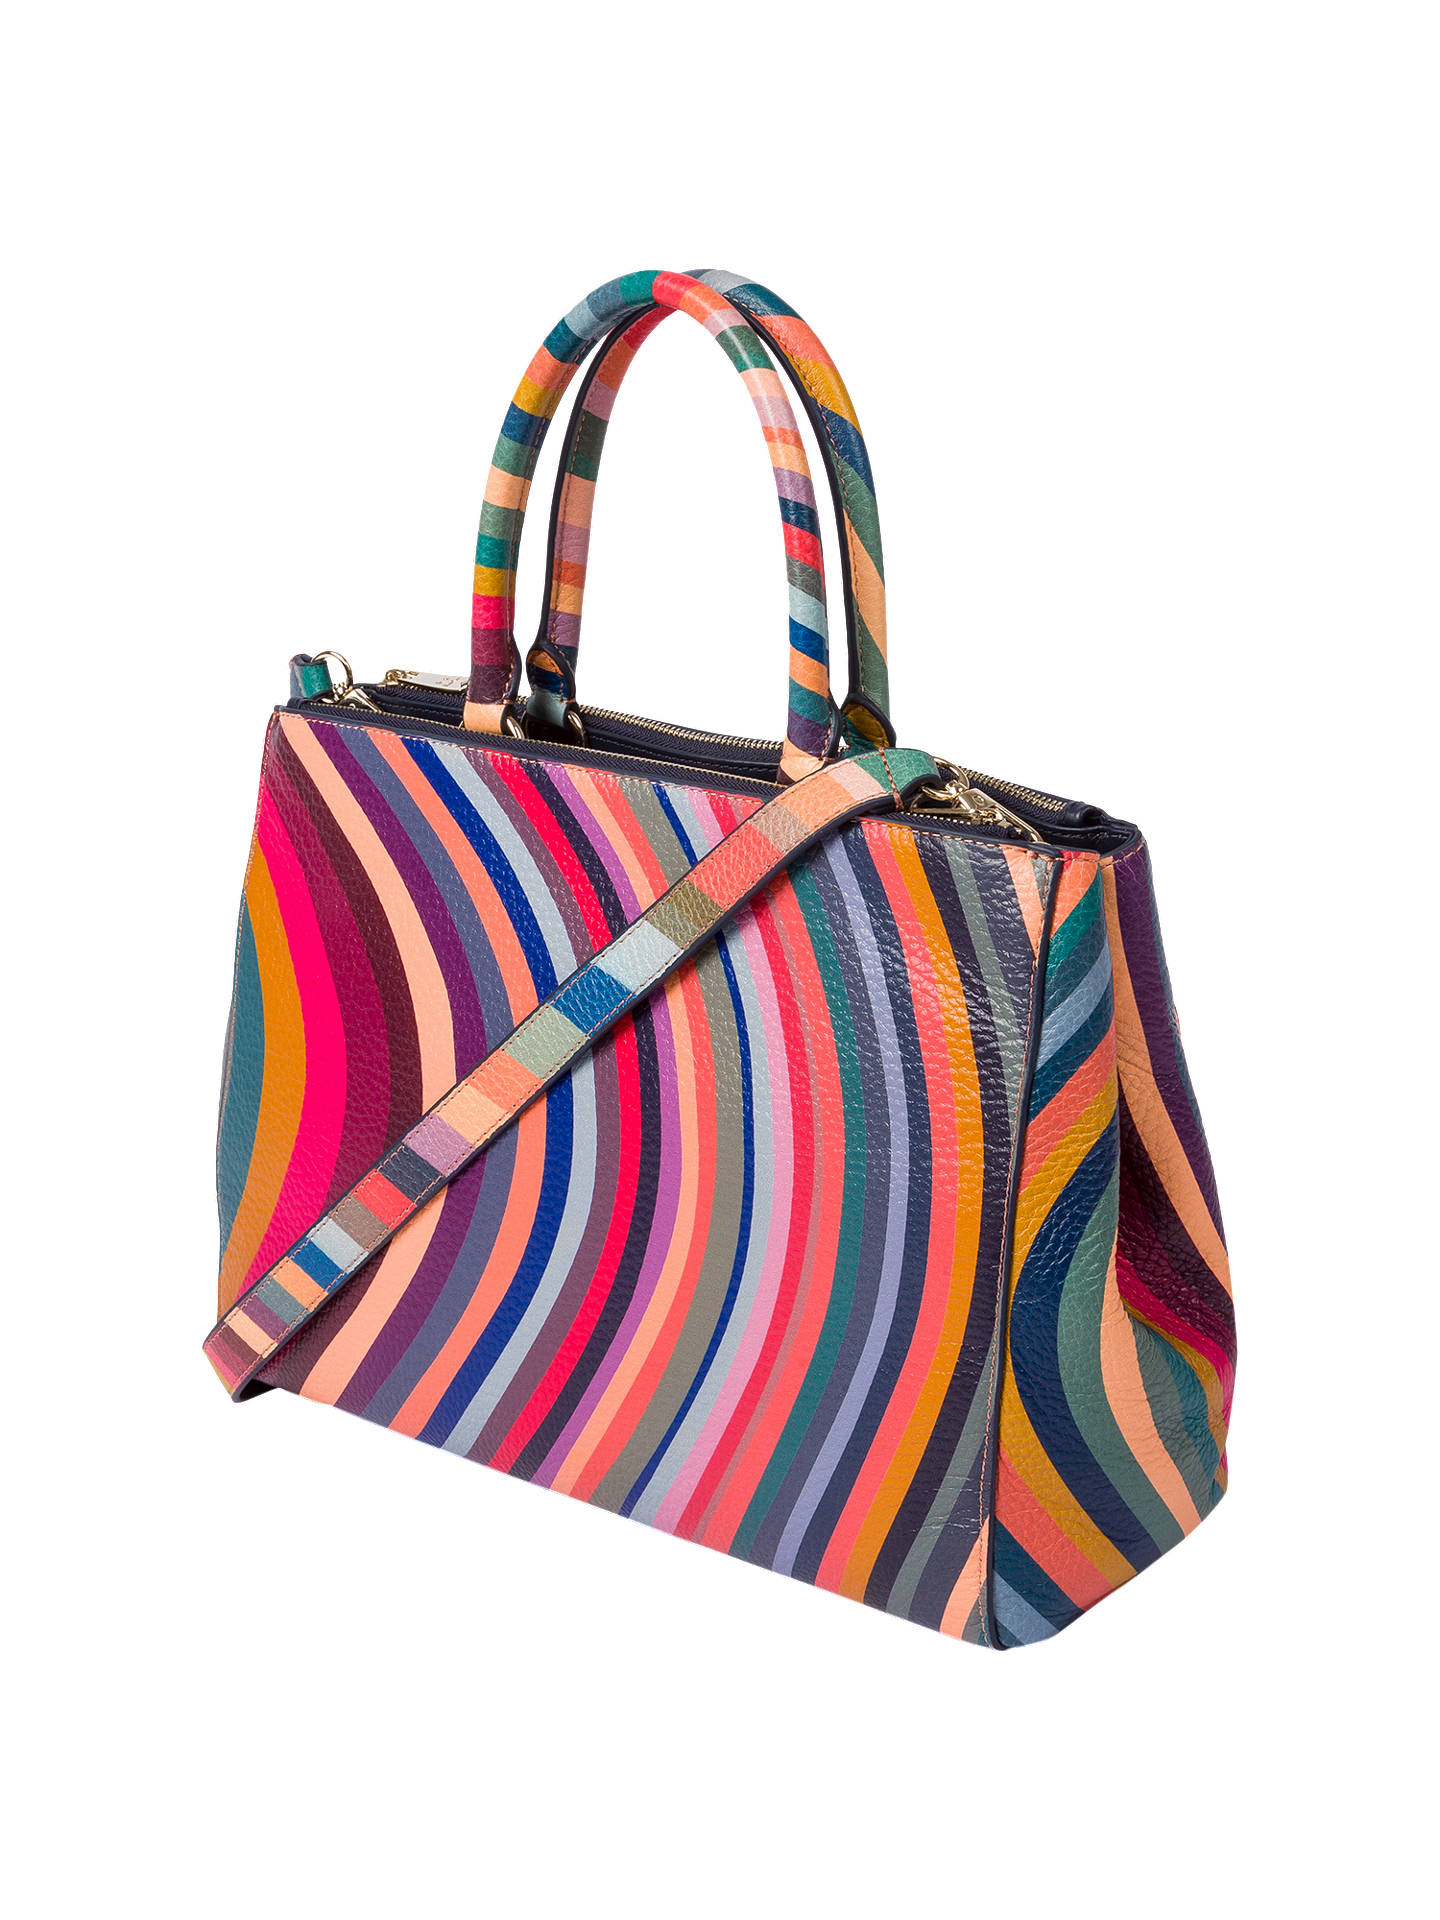 Paul Smith Leather Swirl Top Handle Tote Bag Multi Online At Johnlewis